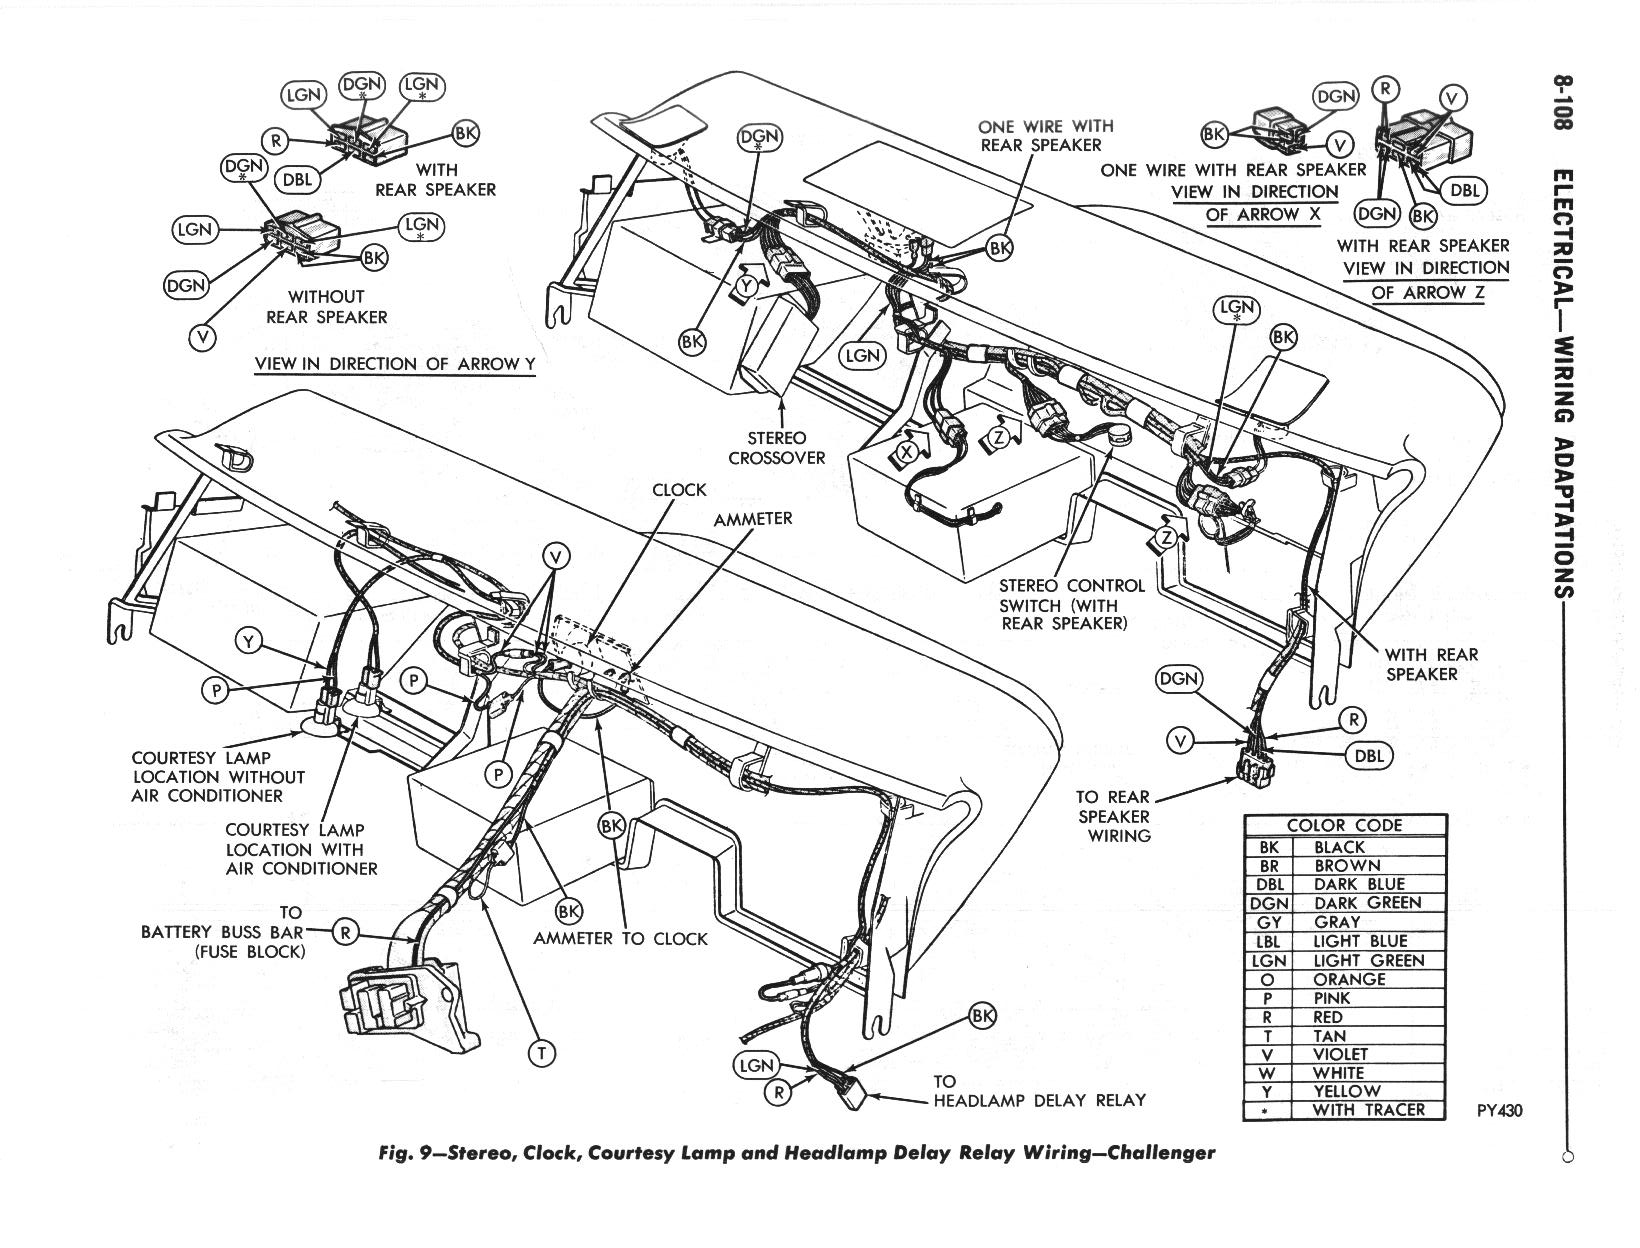 hight resolution of 1970 dodge challenger drawing at getdrawings com free for personal rh getdrawings com 1970 mustang tachometer 1970 challenger wiring diagram